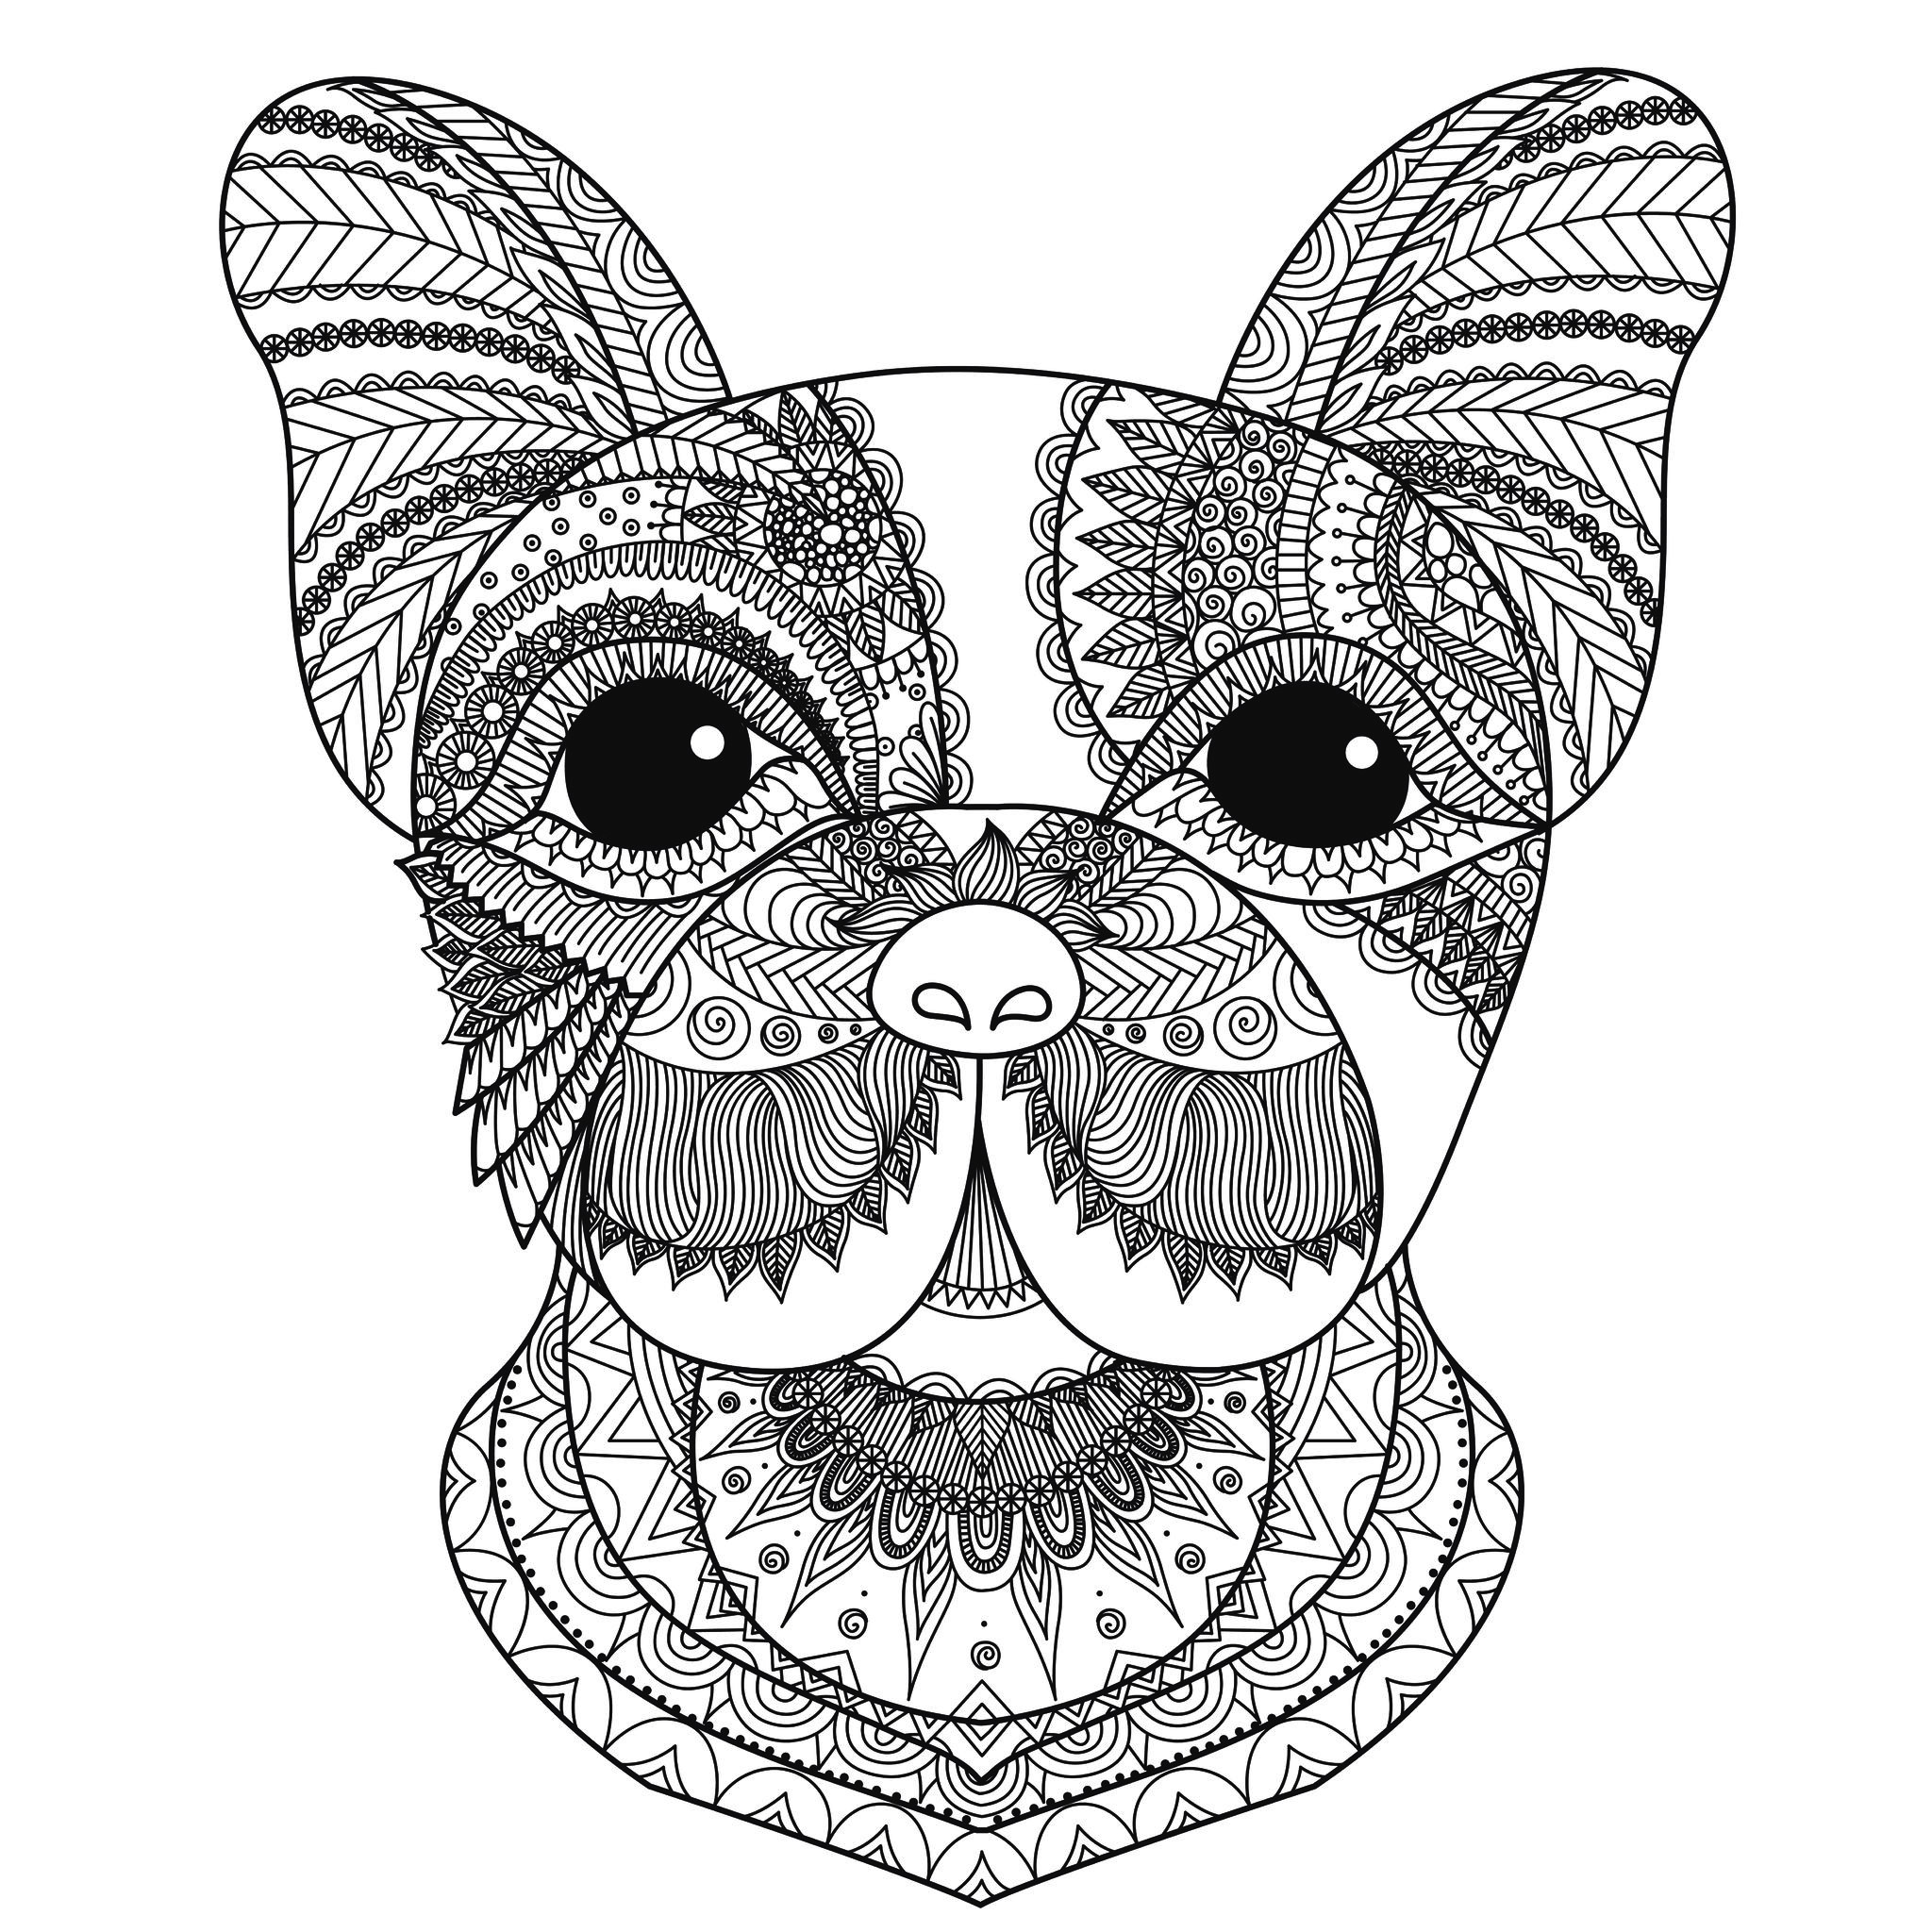 dog coloring dogs 101 coloring pages download and print for free dog coloring